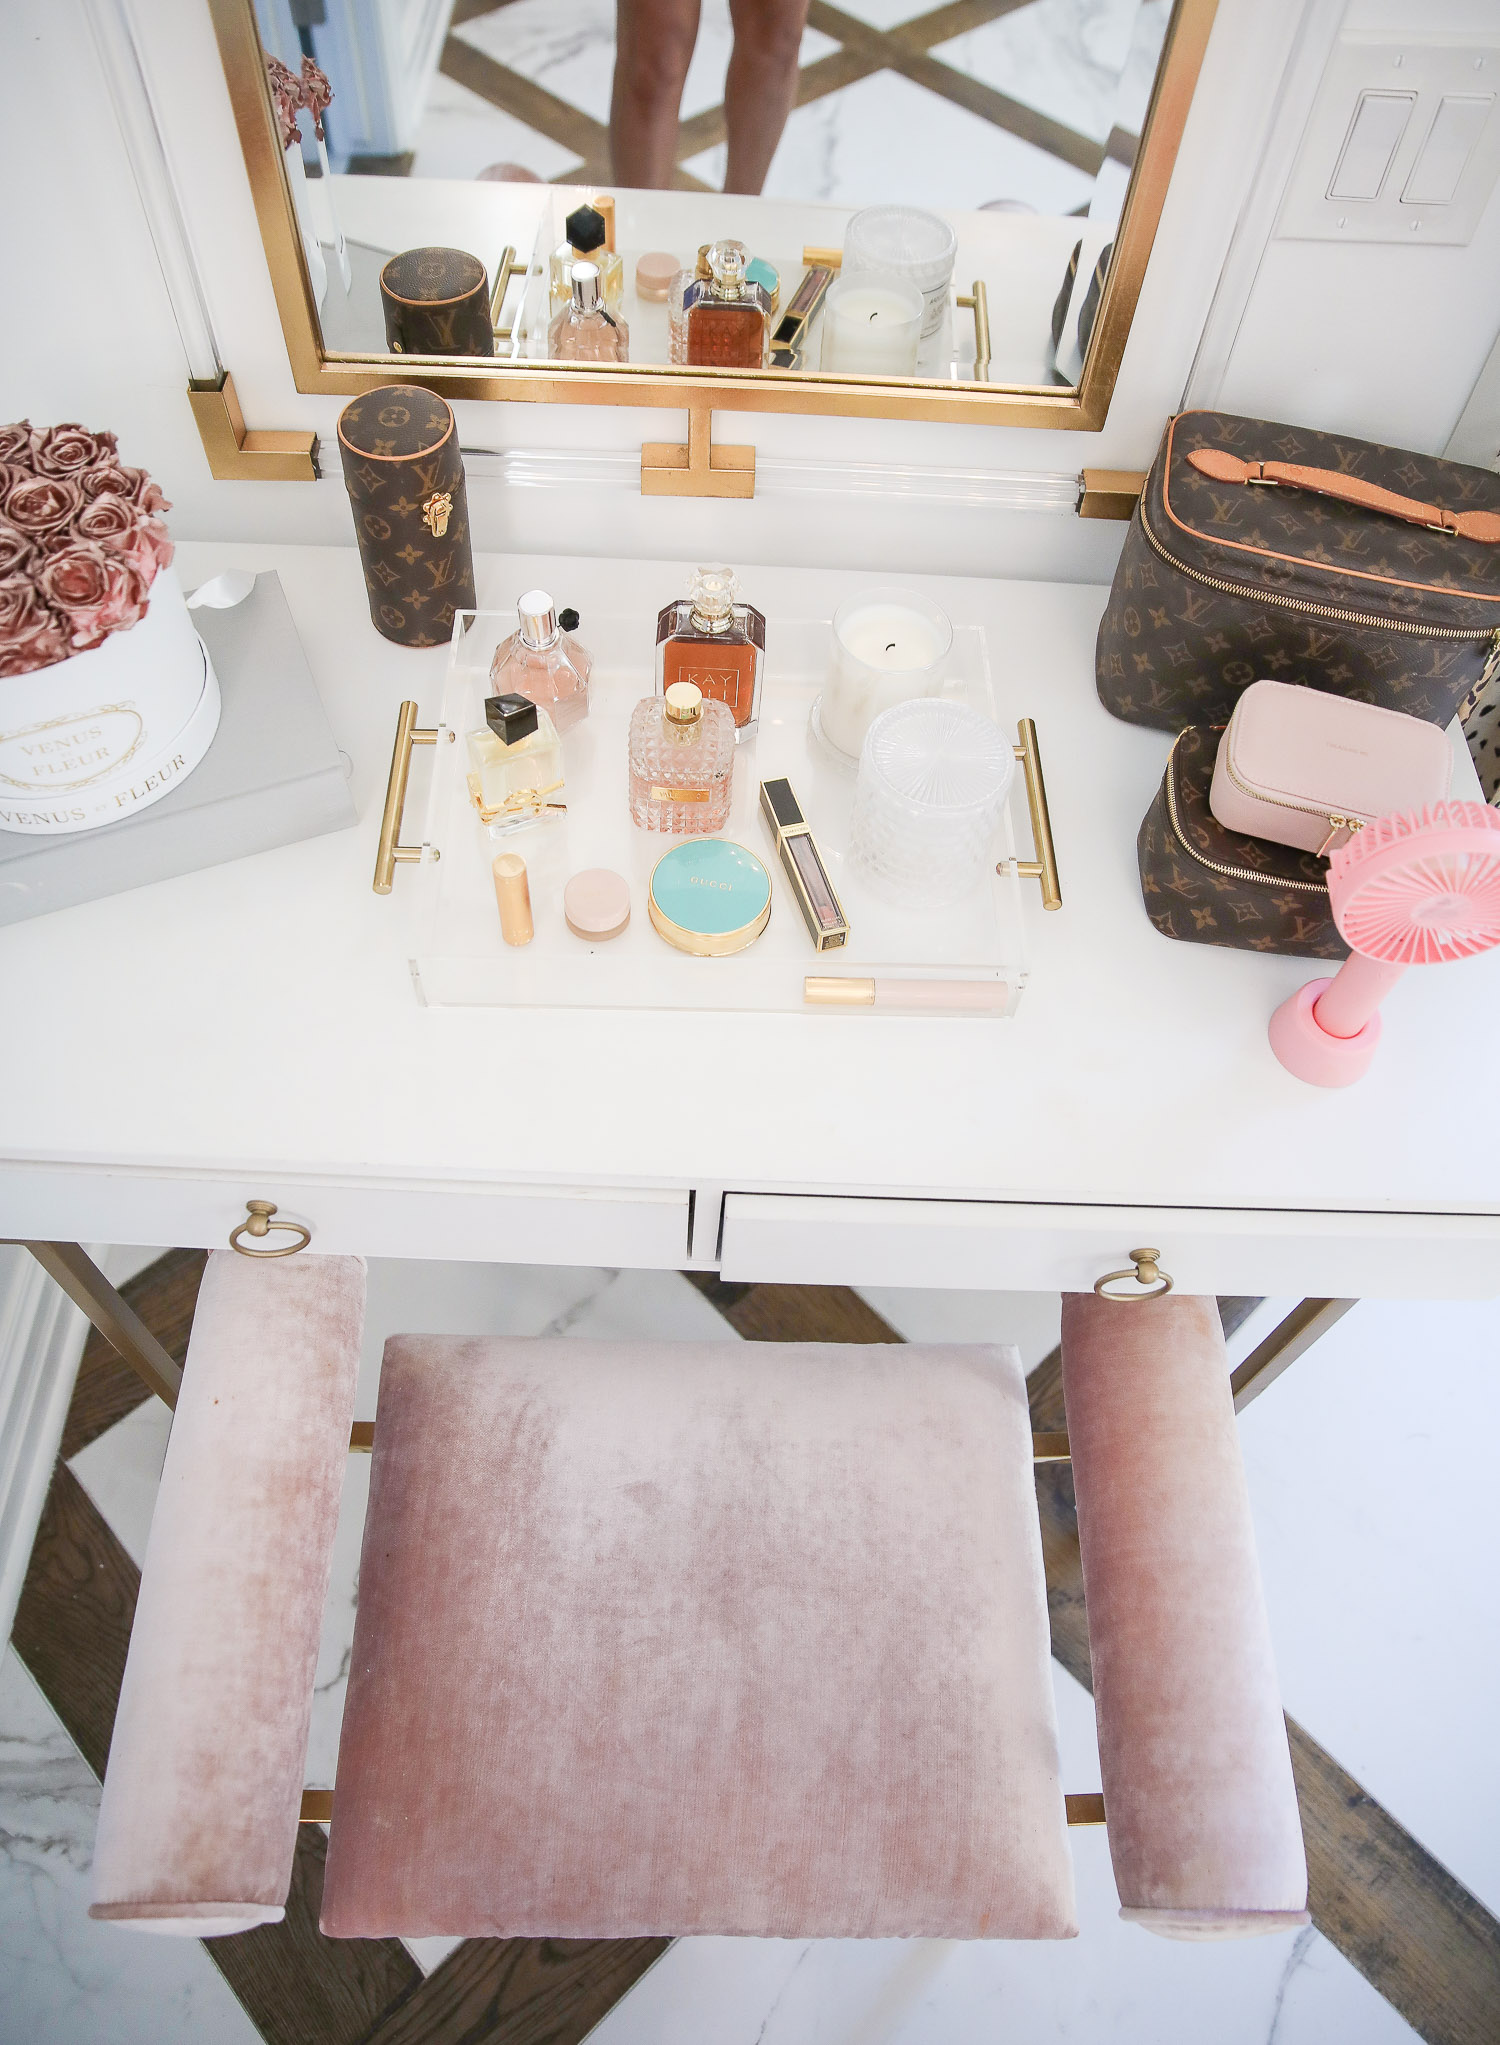 amazon must haves summer 2020, amazon home decor blog post, amazon luxury must haves, two story closet pinterest, emily gemma, closet organization | Amazon Favorites by popular US life and style blog, The Sweetest Thing: image of a Amazon Seagold Mini Handheld Fan, Overstock BELLEZE 2-Drawer Computer Desk Table, Overstock Moor Pink Velvet Upholstered Gold Metal Ottoman, Amazon Dior: The Collections, 1947-2017 book, LOUIS VUITTON Monogram Nice BB, and Wayfair Rectangle Wall Mirror.